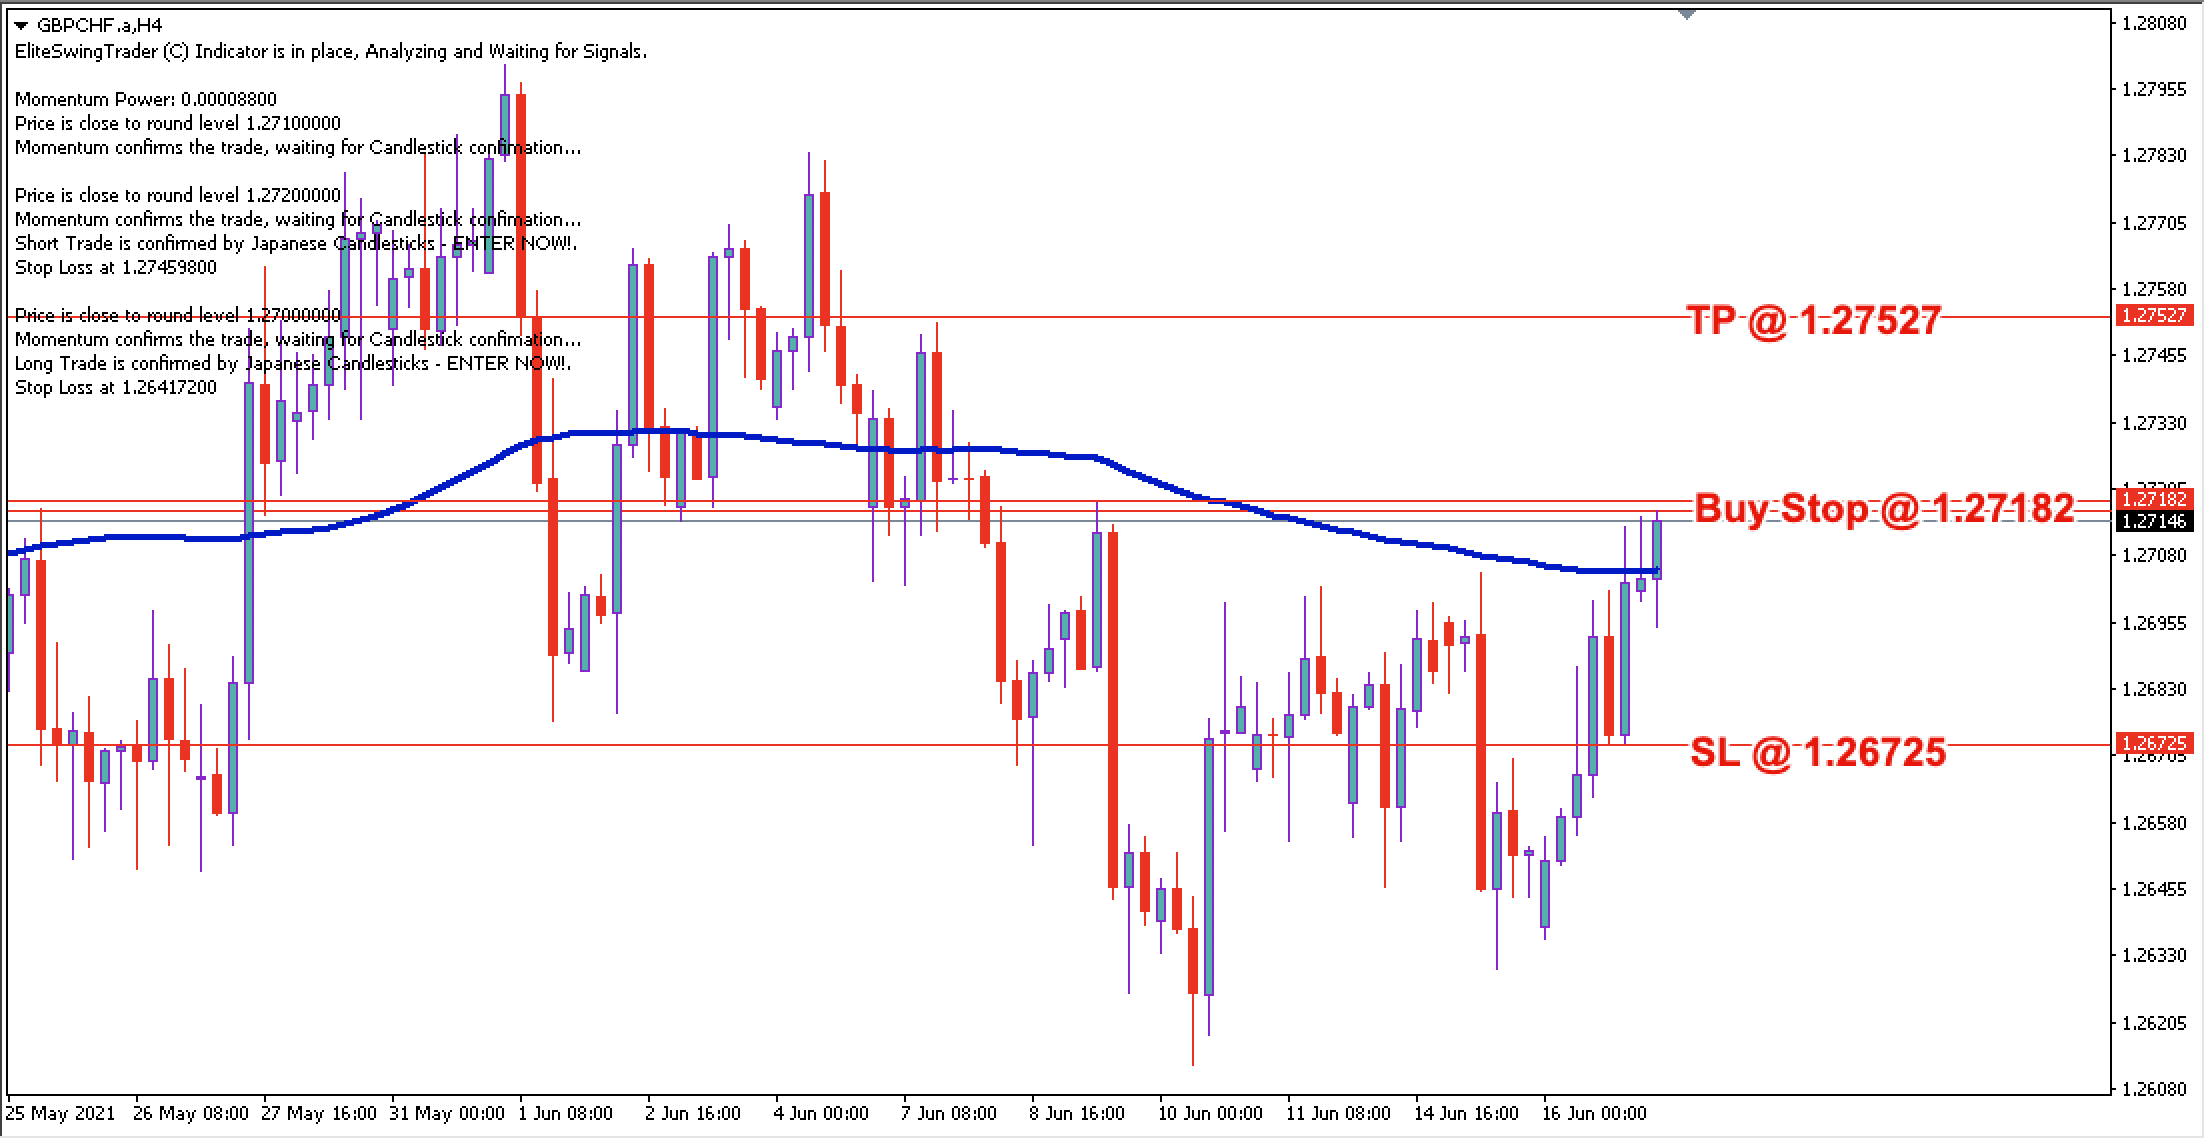 GBP/CHF Daily Price Forecast – 17th June 2021